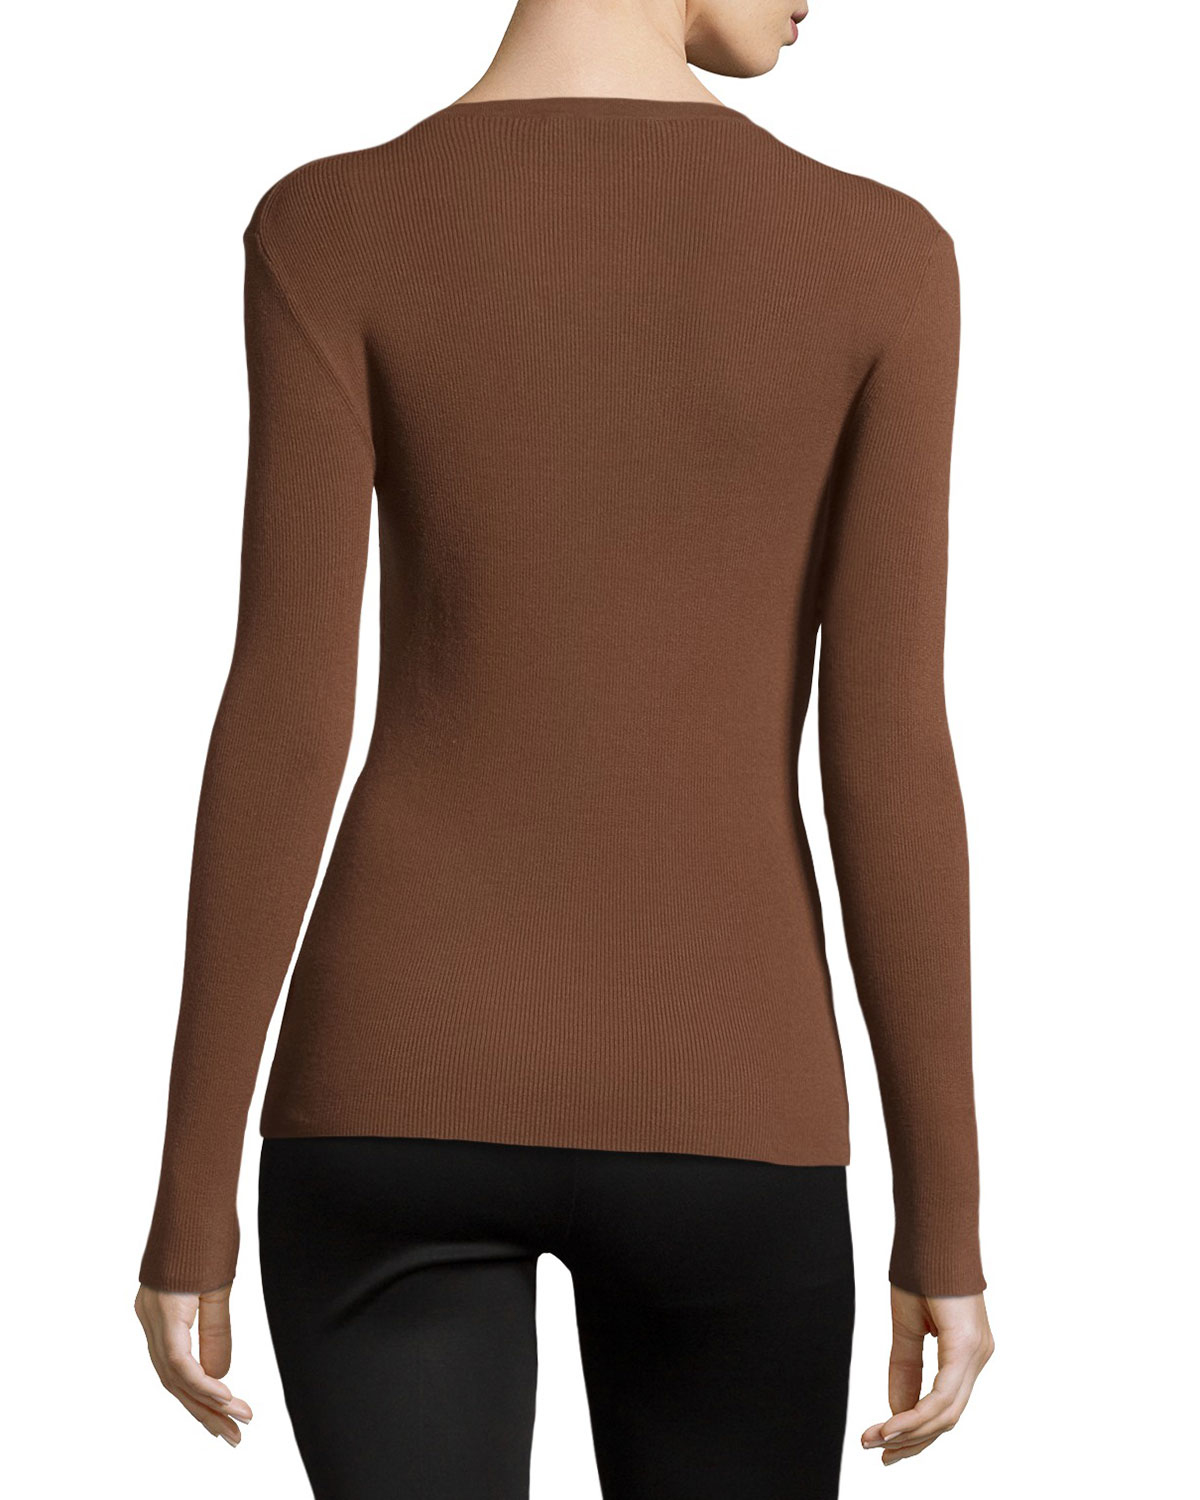 Michael kors long sleeve fitted top in brown lyst for Adam lippes women s long sleeve vee t shirt